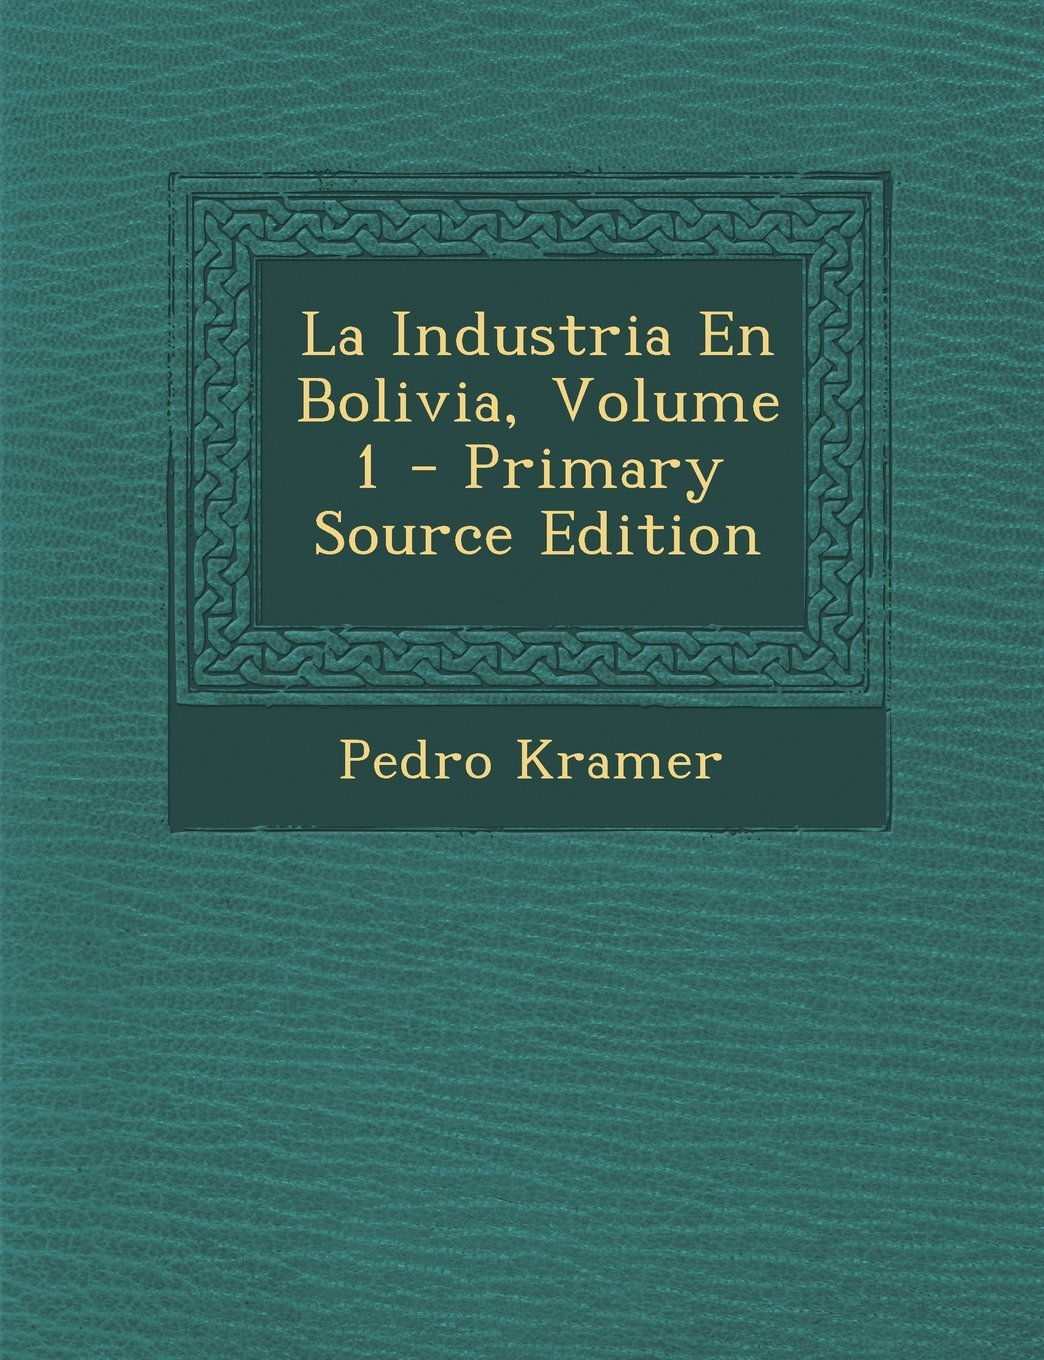 La Industria En Bolivia, Volume 1 - Primary Source Edition: Amazon.es: Pedro Kramer: Libros